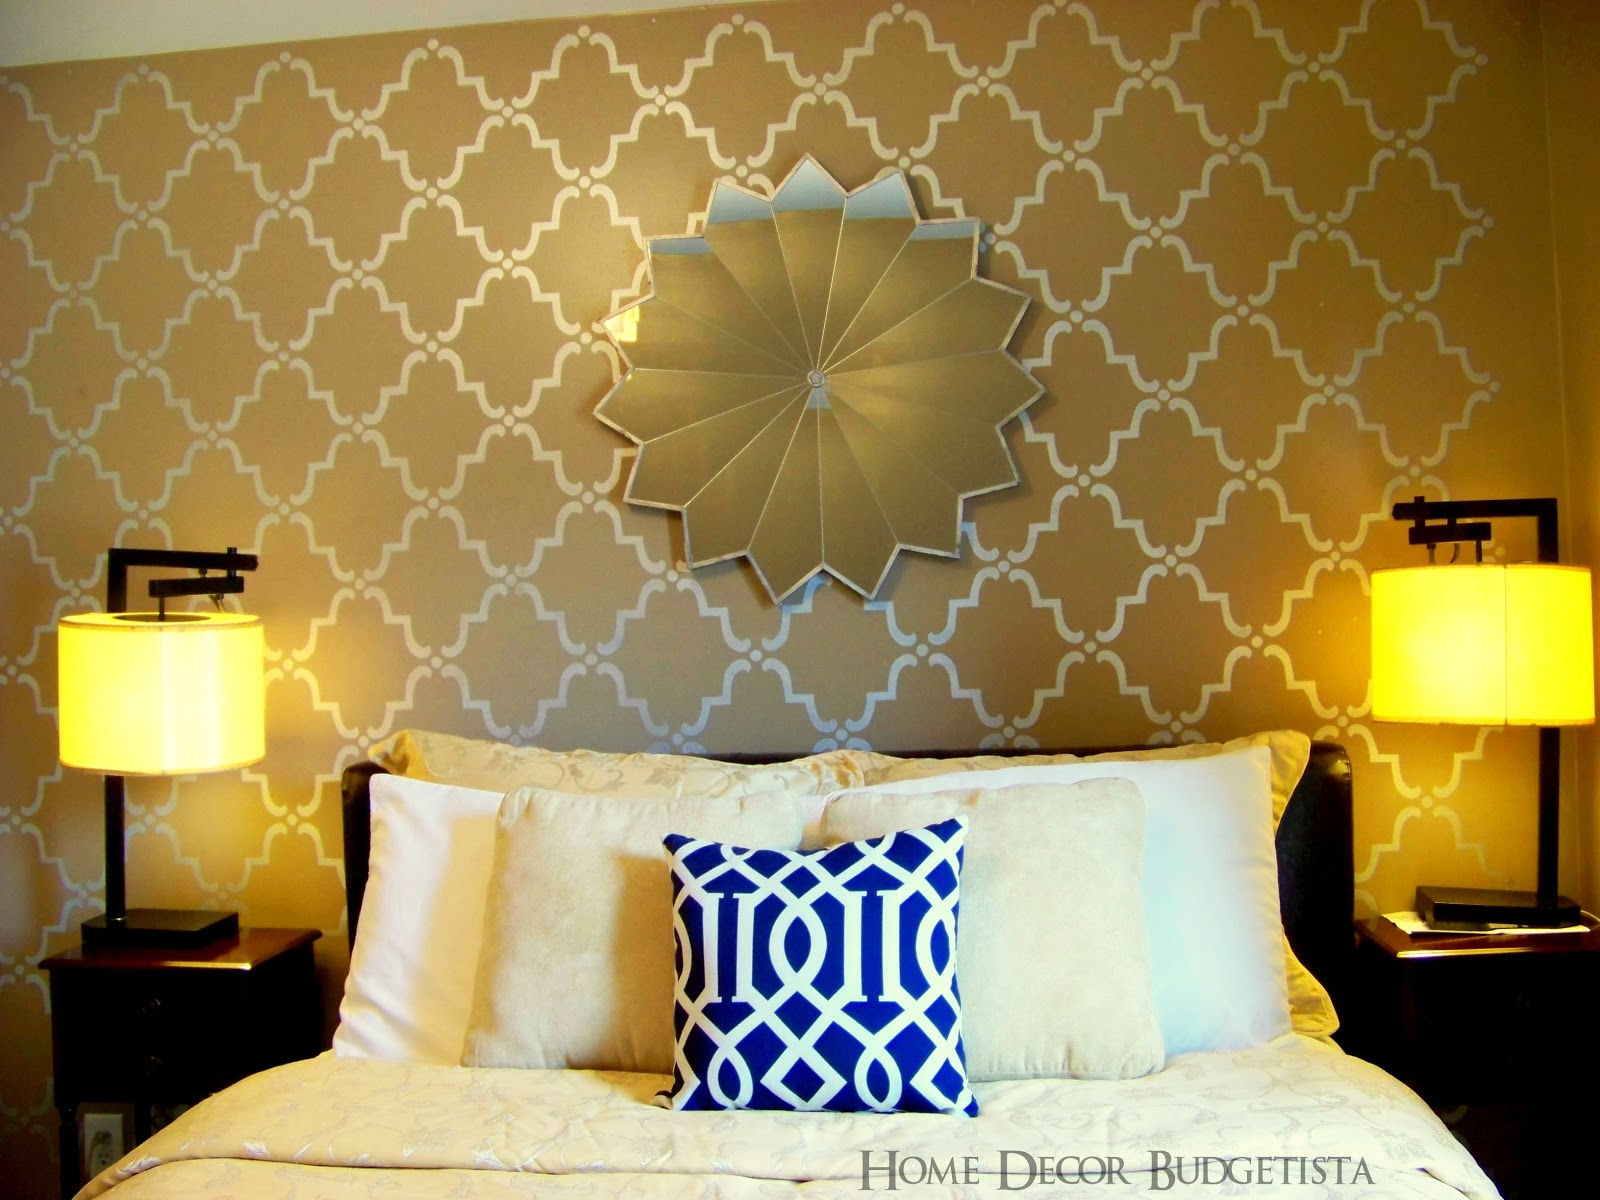 Home Decor Budgetista Home Tour Guest Room